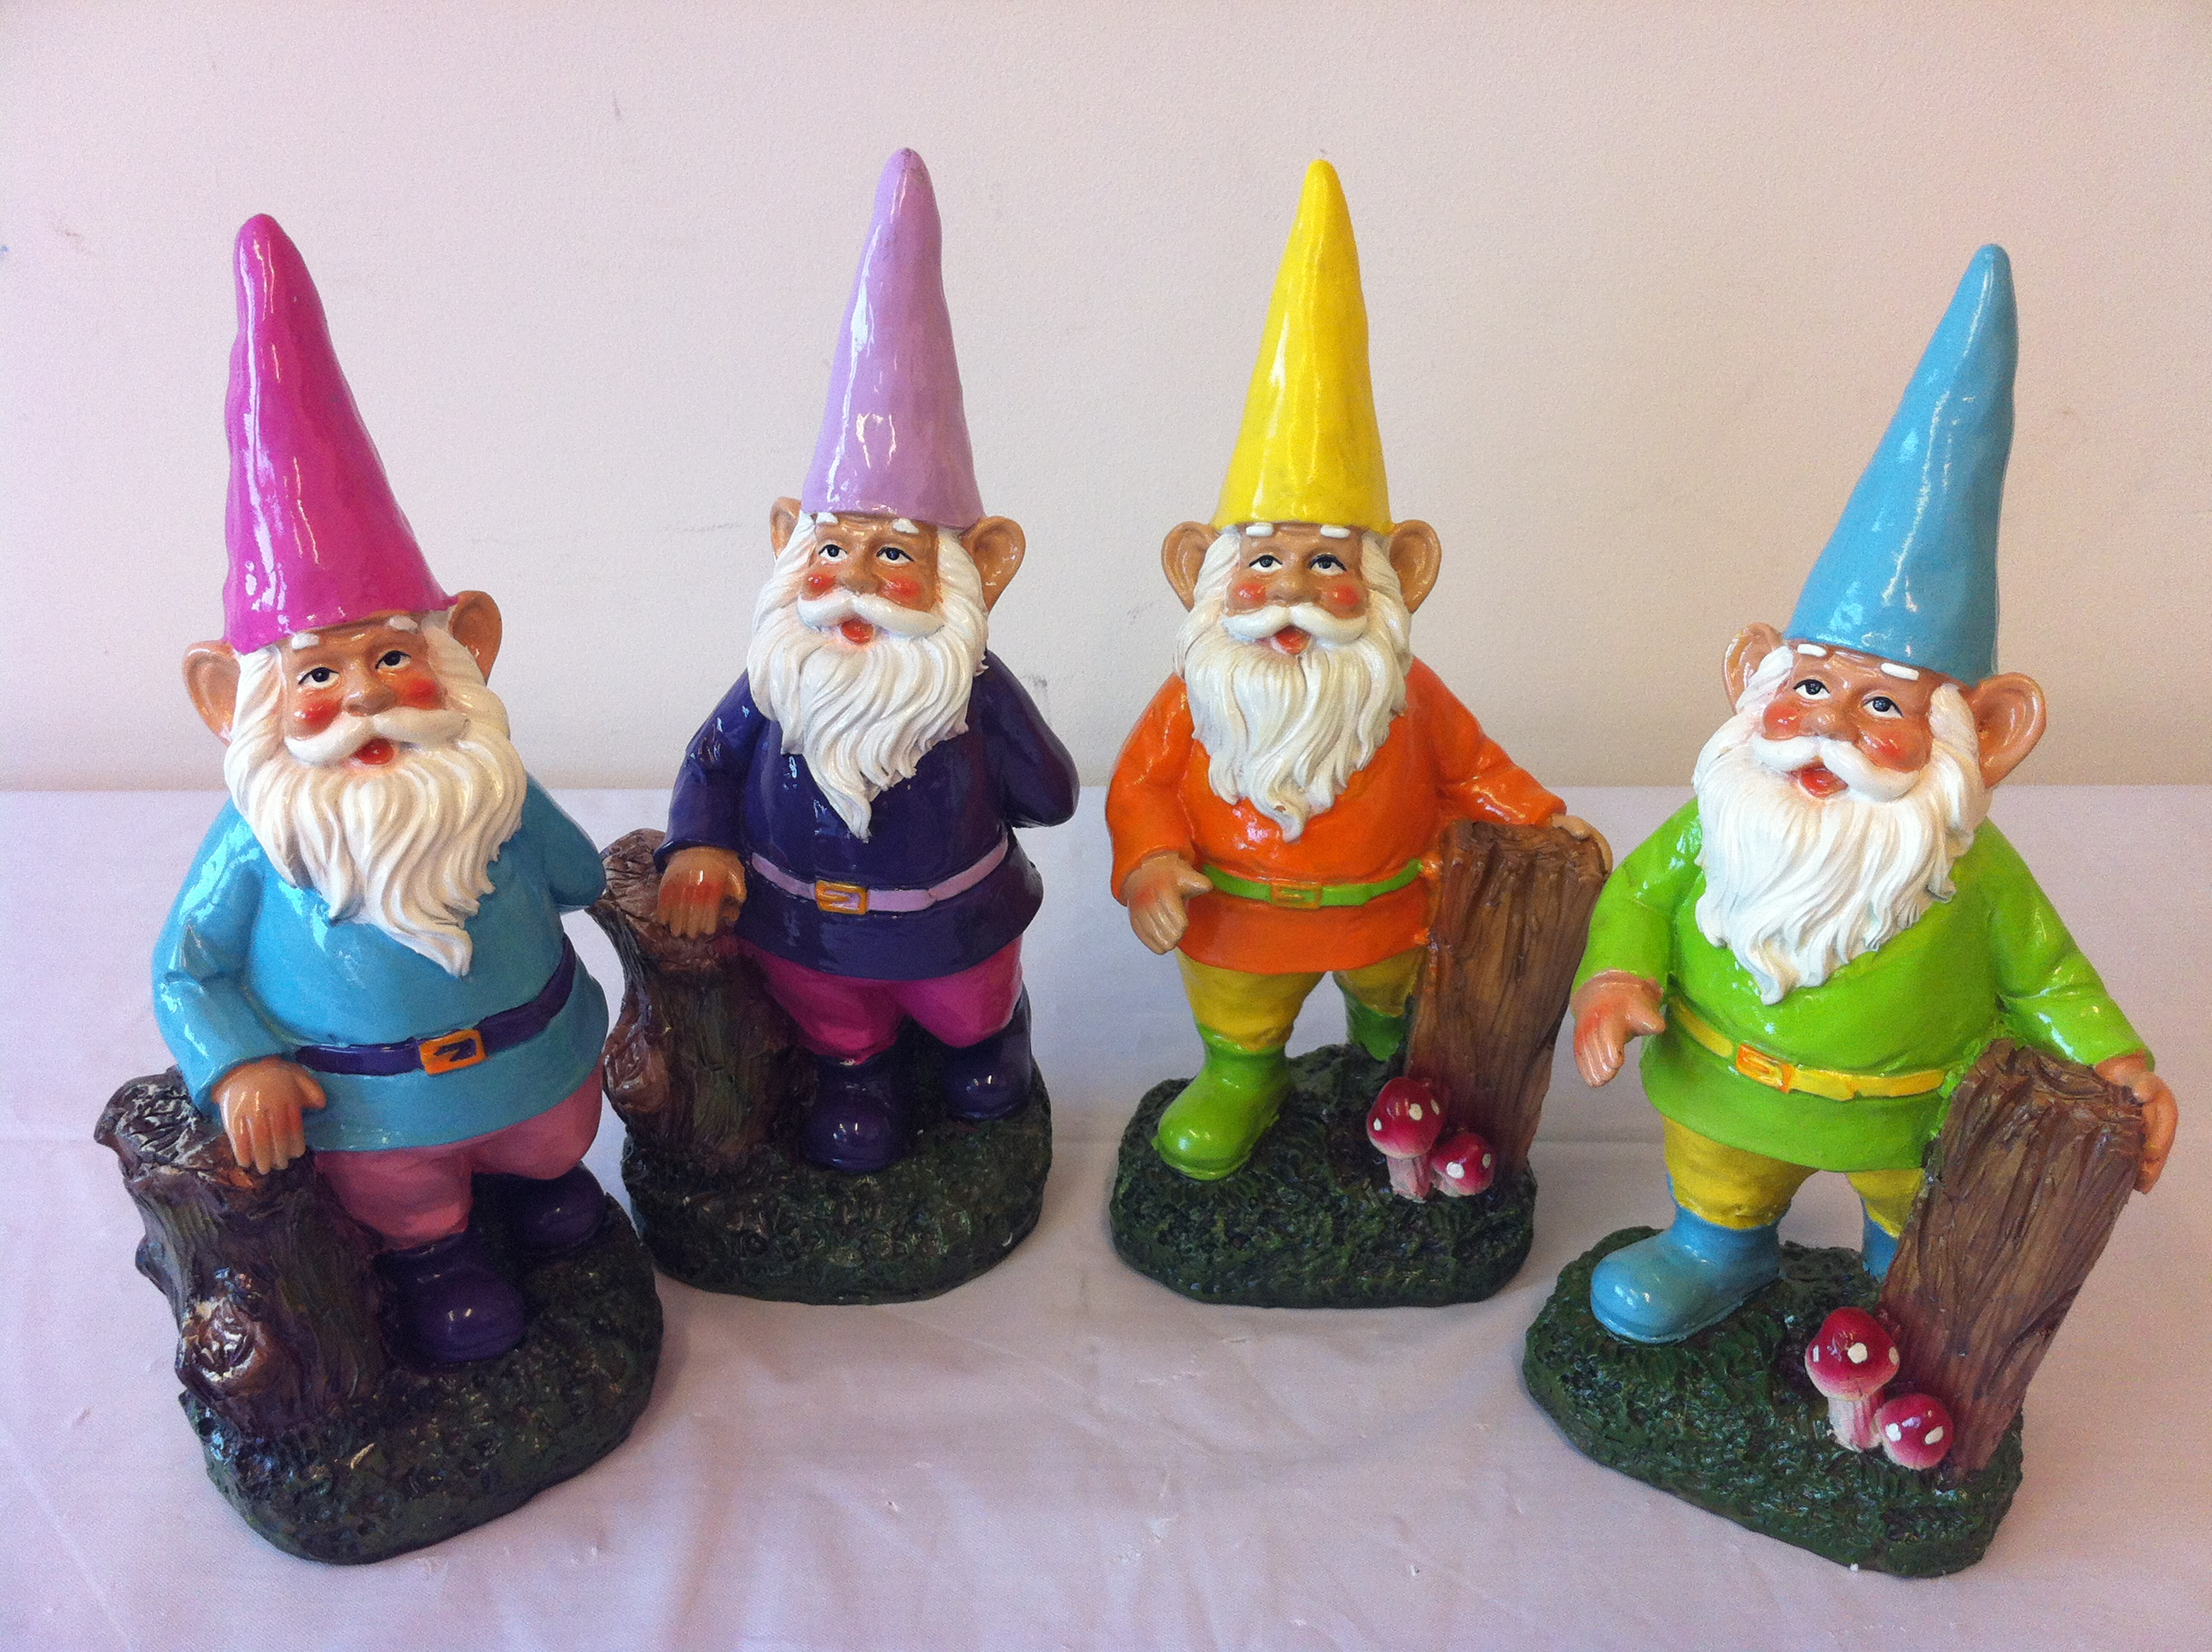 Gnome 4: Outdoor Garden Gnome. Weather Treated. Well Painted. New